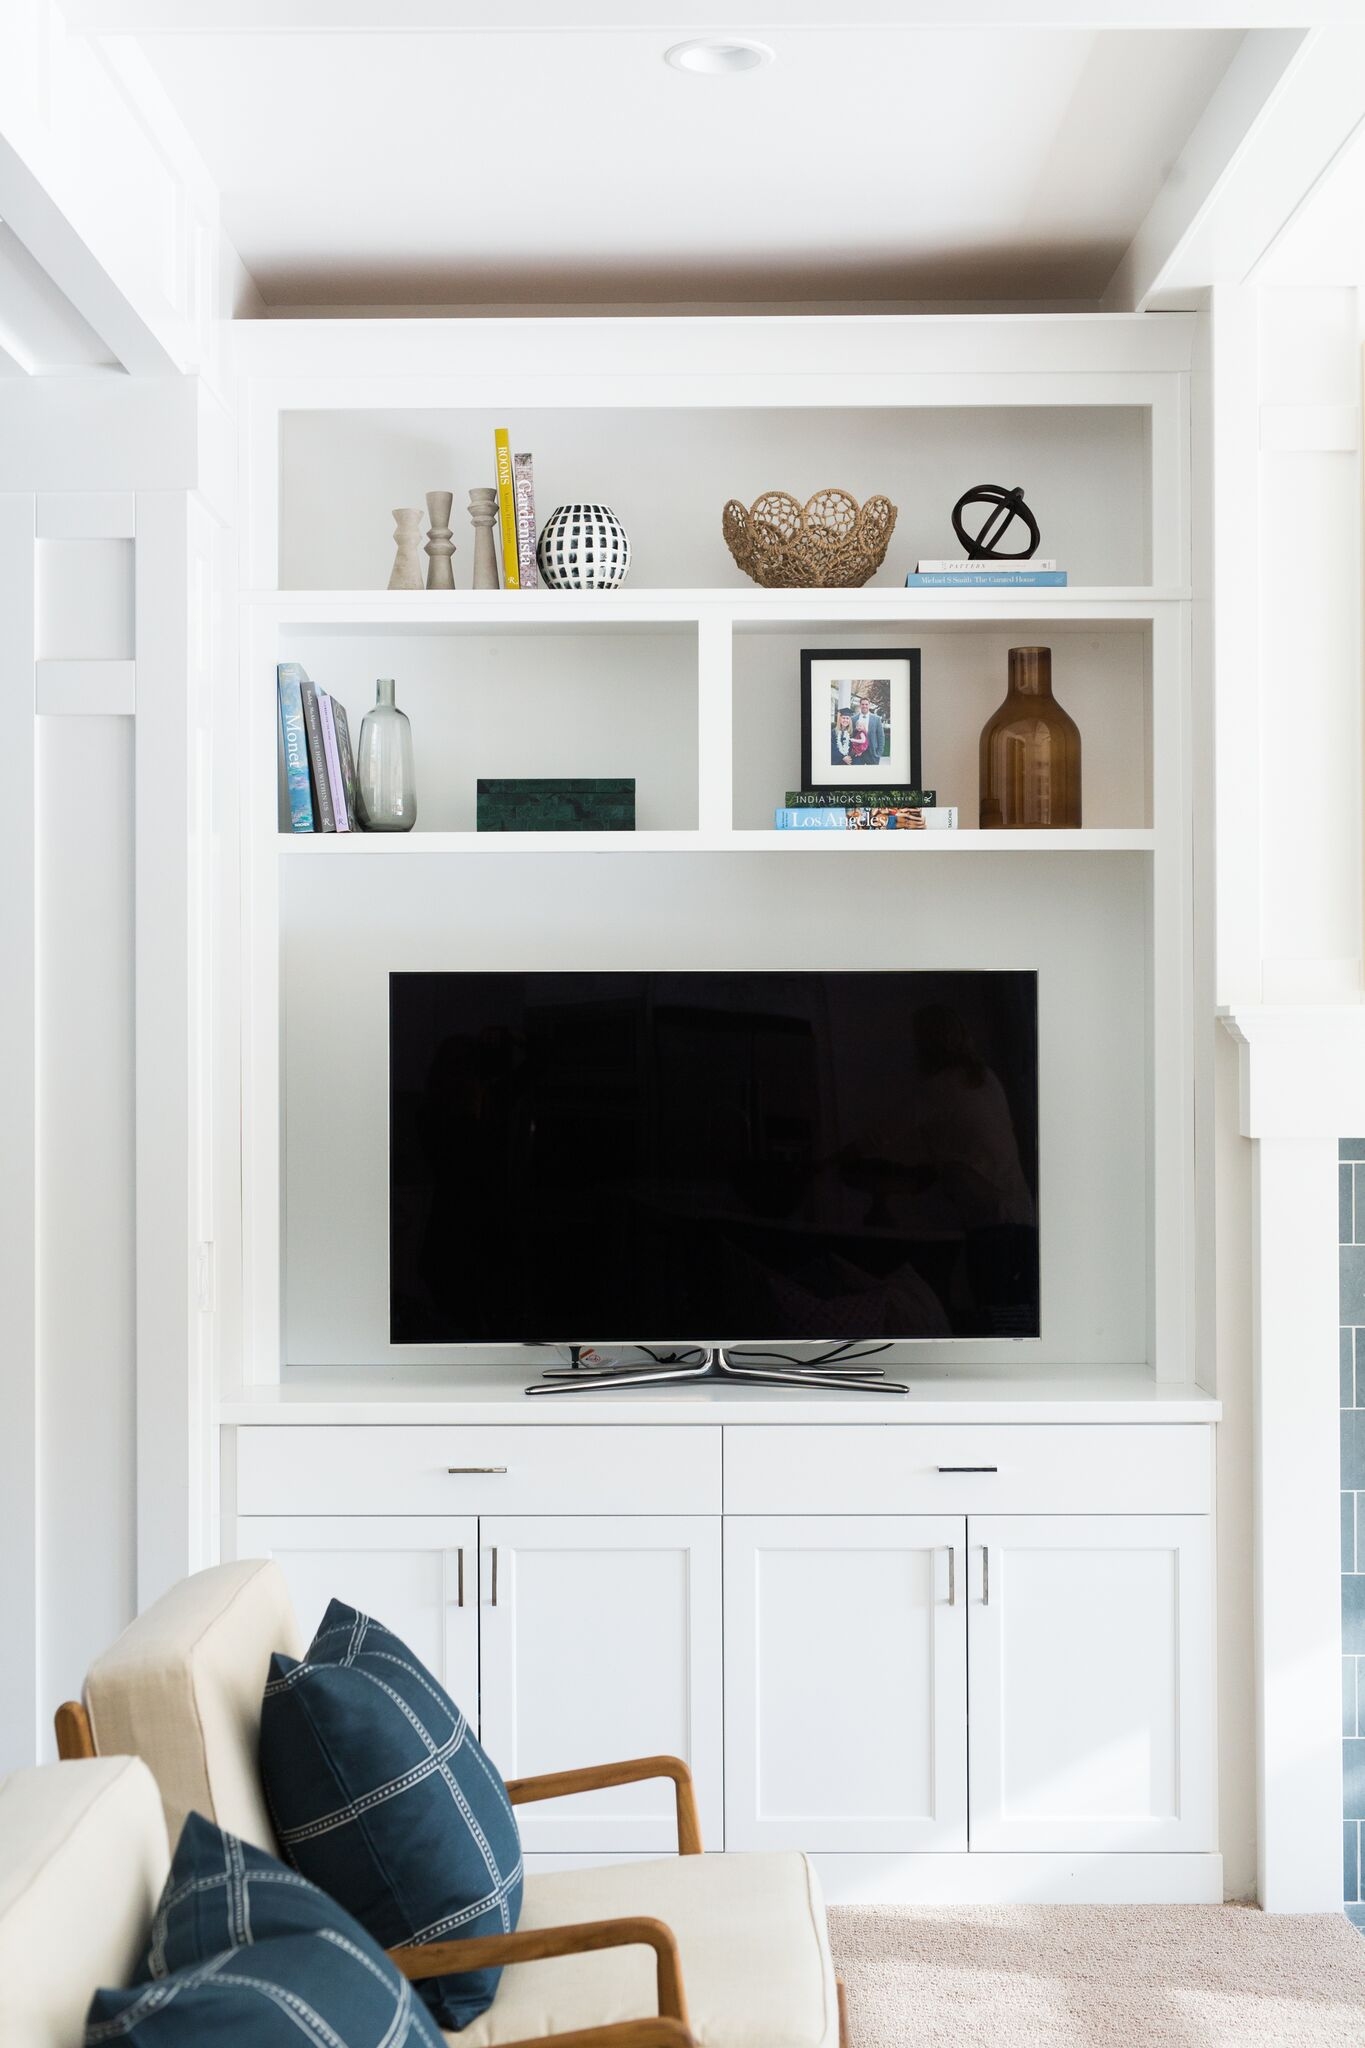 Flat screen TV on top of built in cabinets